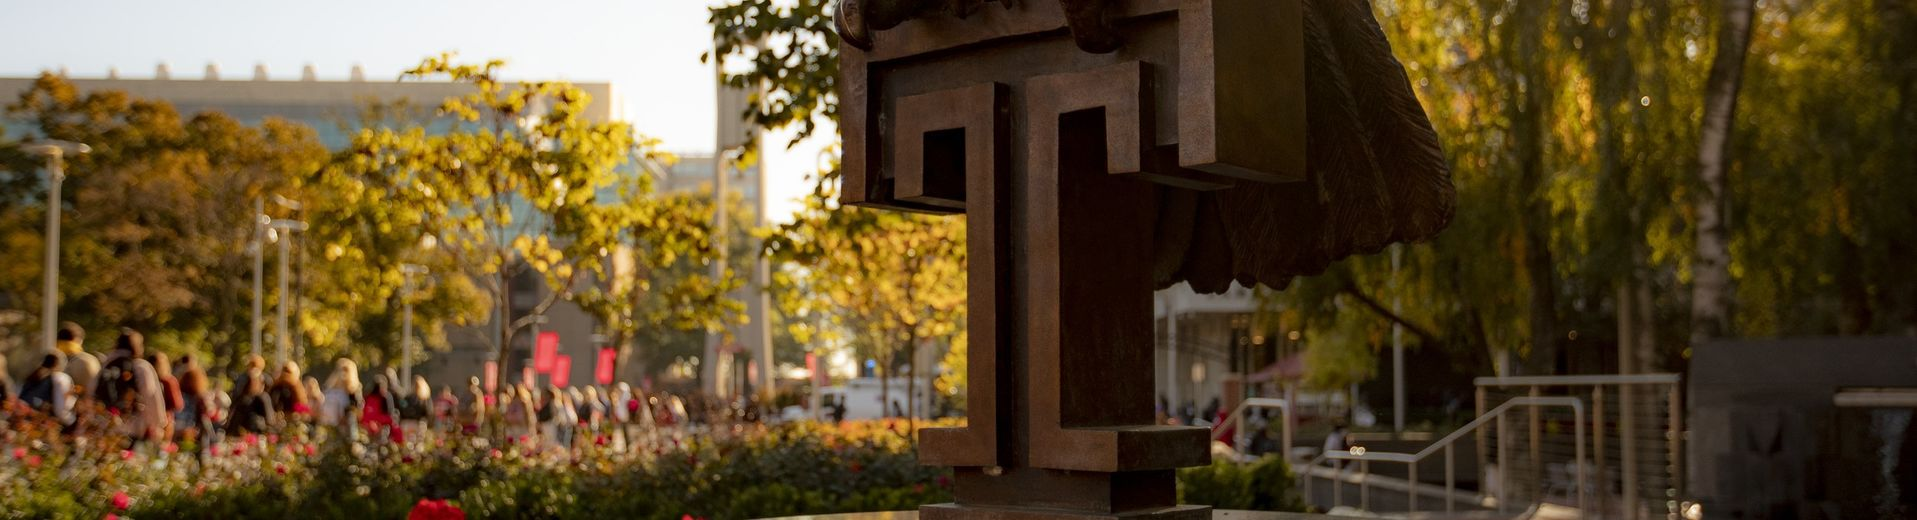 The Temple T and owl statue in O'Connor Plaza at dusk